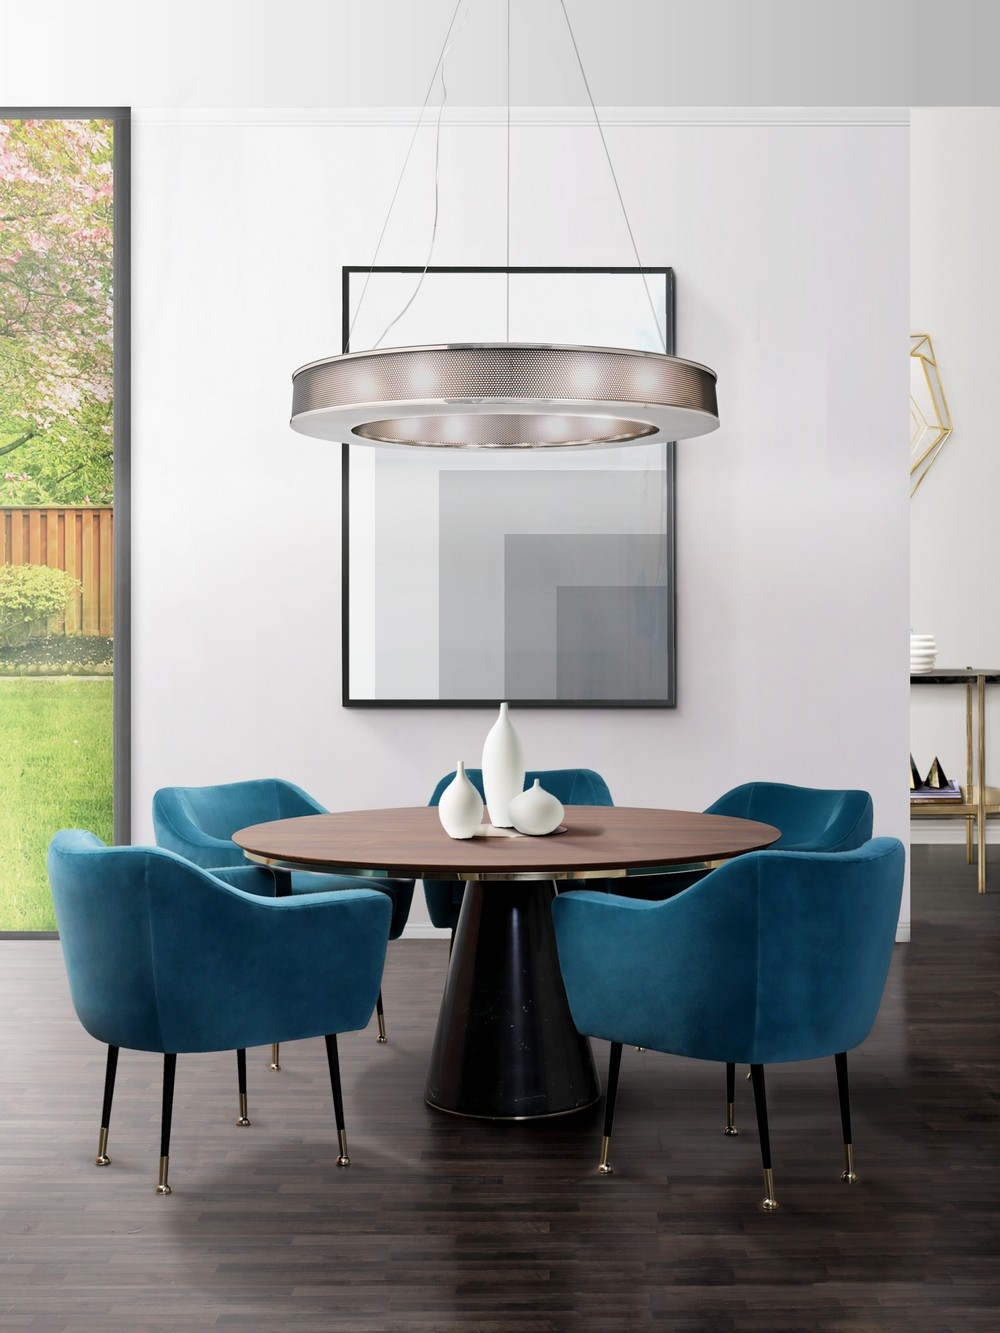 Pantone's Classic Blue: 5 Trendy Dining Room Ideas dining room ideas Pantone's Classic Blue: 5 Trendy Dining Room Ideas charlotte